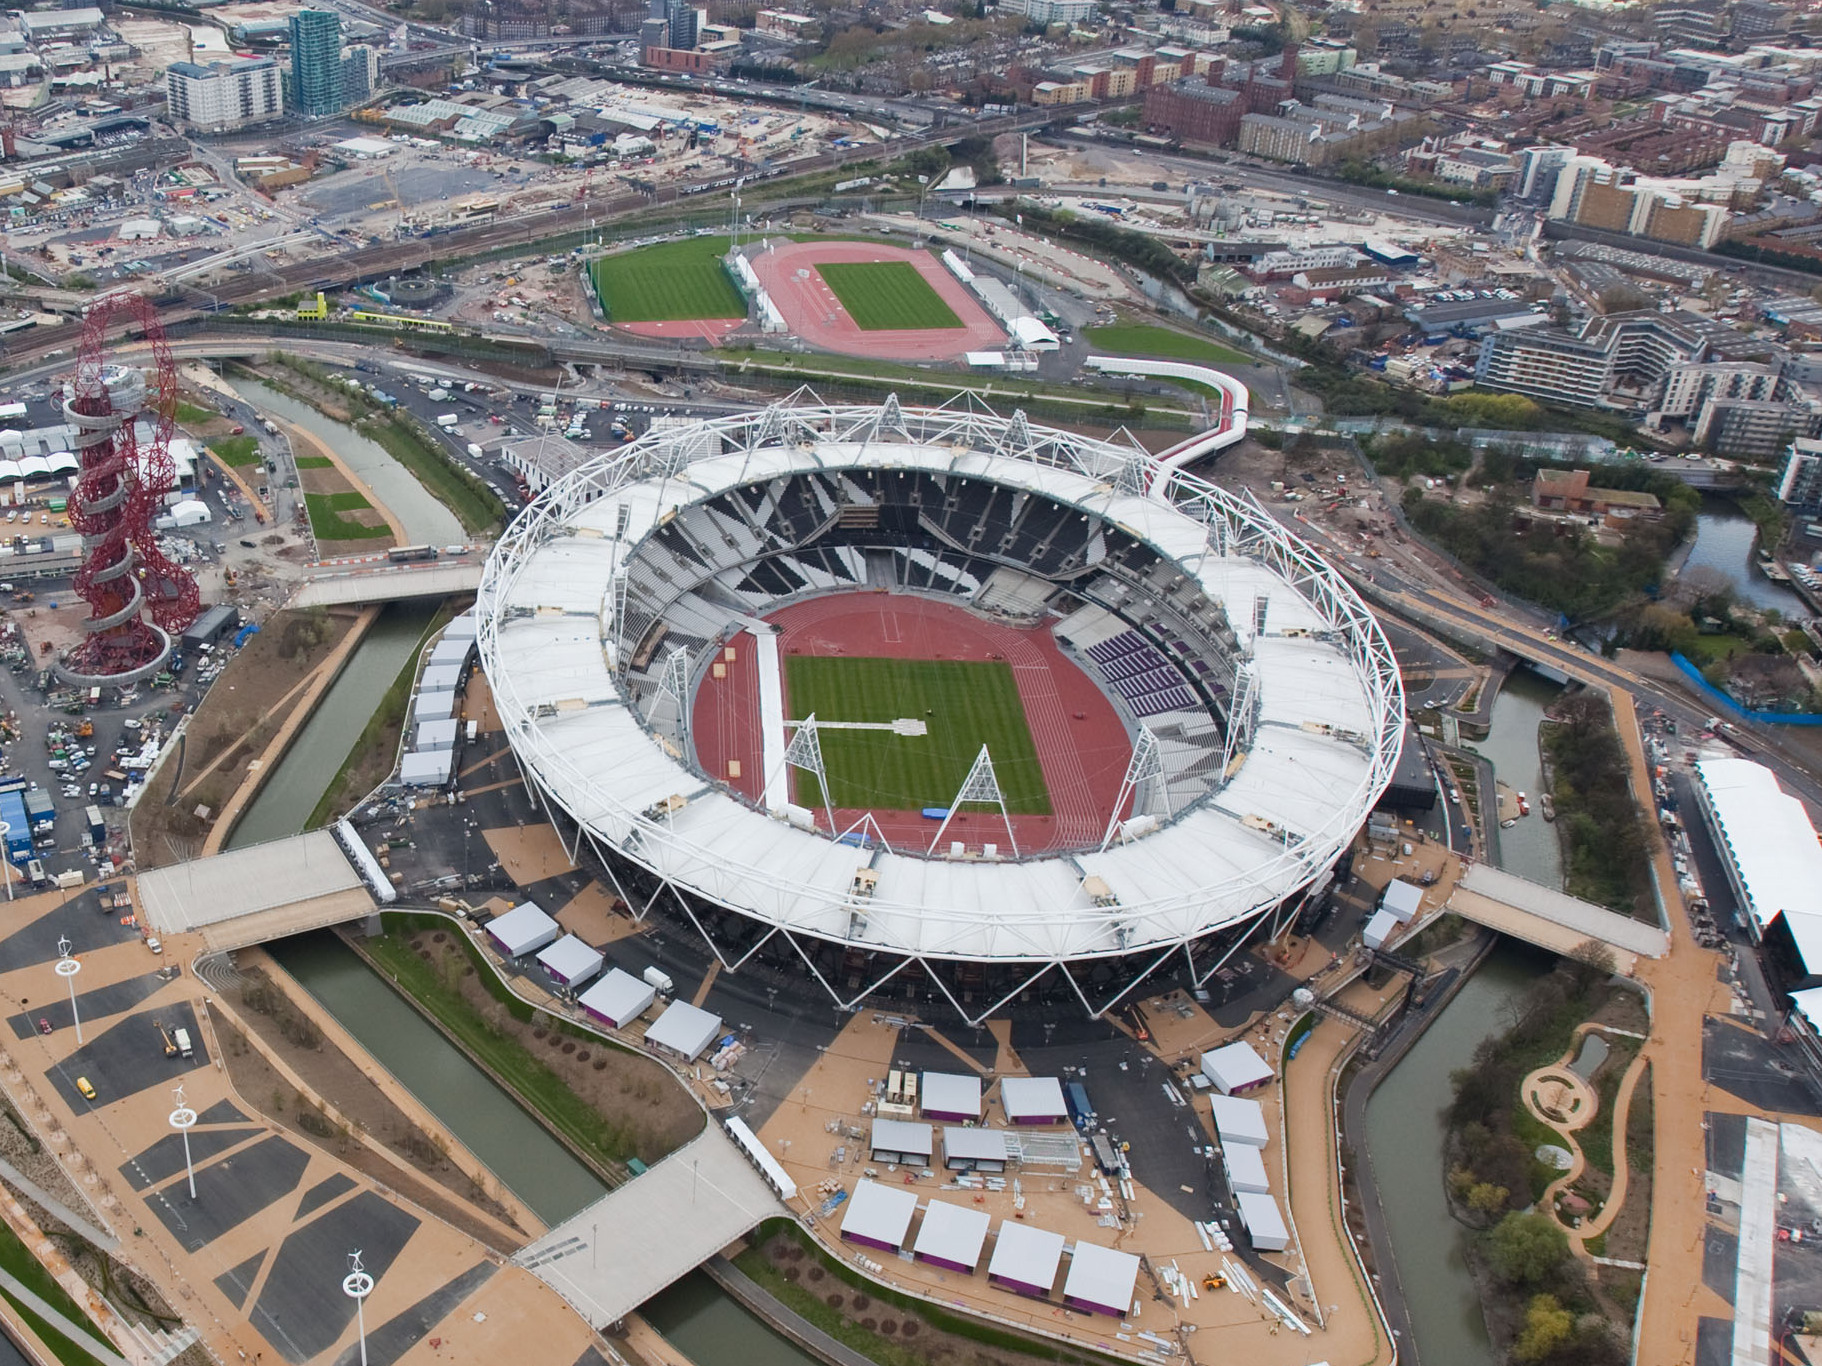 Olympic Stadium Aerial View Aerial View of The Stadium in